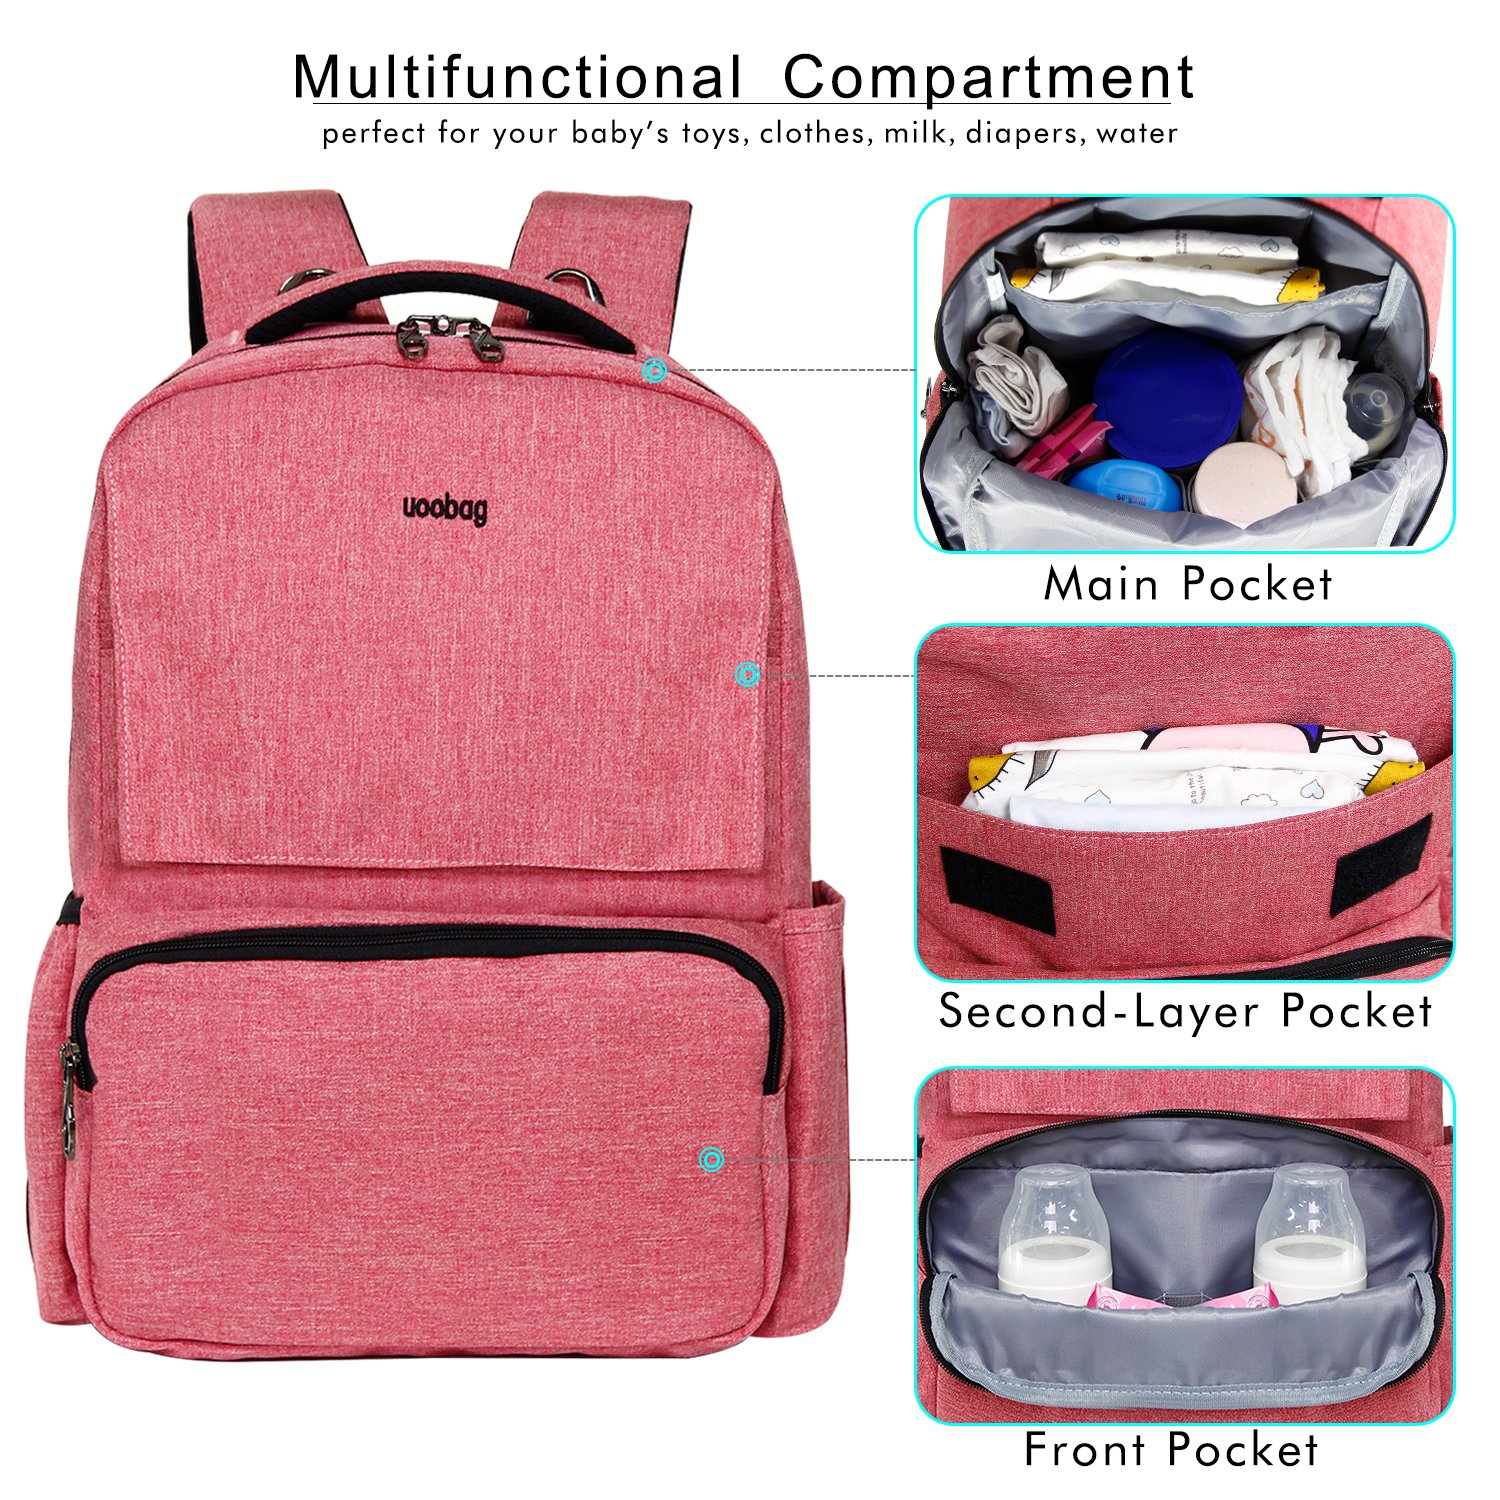 Diaper Bag Backpack Multi-Function Nappy Bags for Baby Care Waterproof Travel Back Pack Large Capacity Baby Bag Organizer with Stroller Straps Stylish and Durable Pink